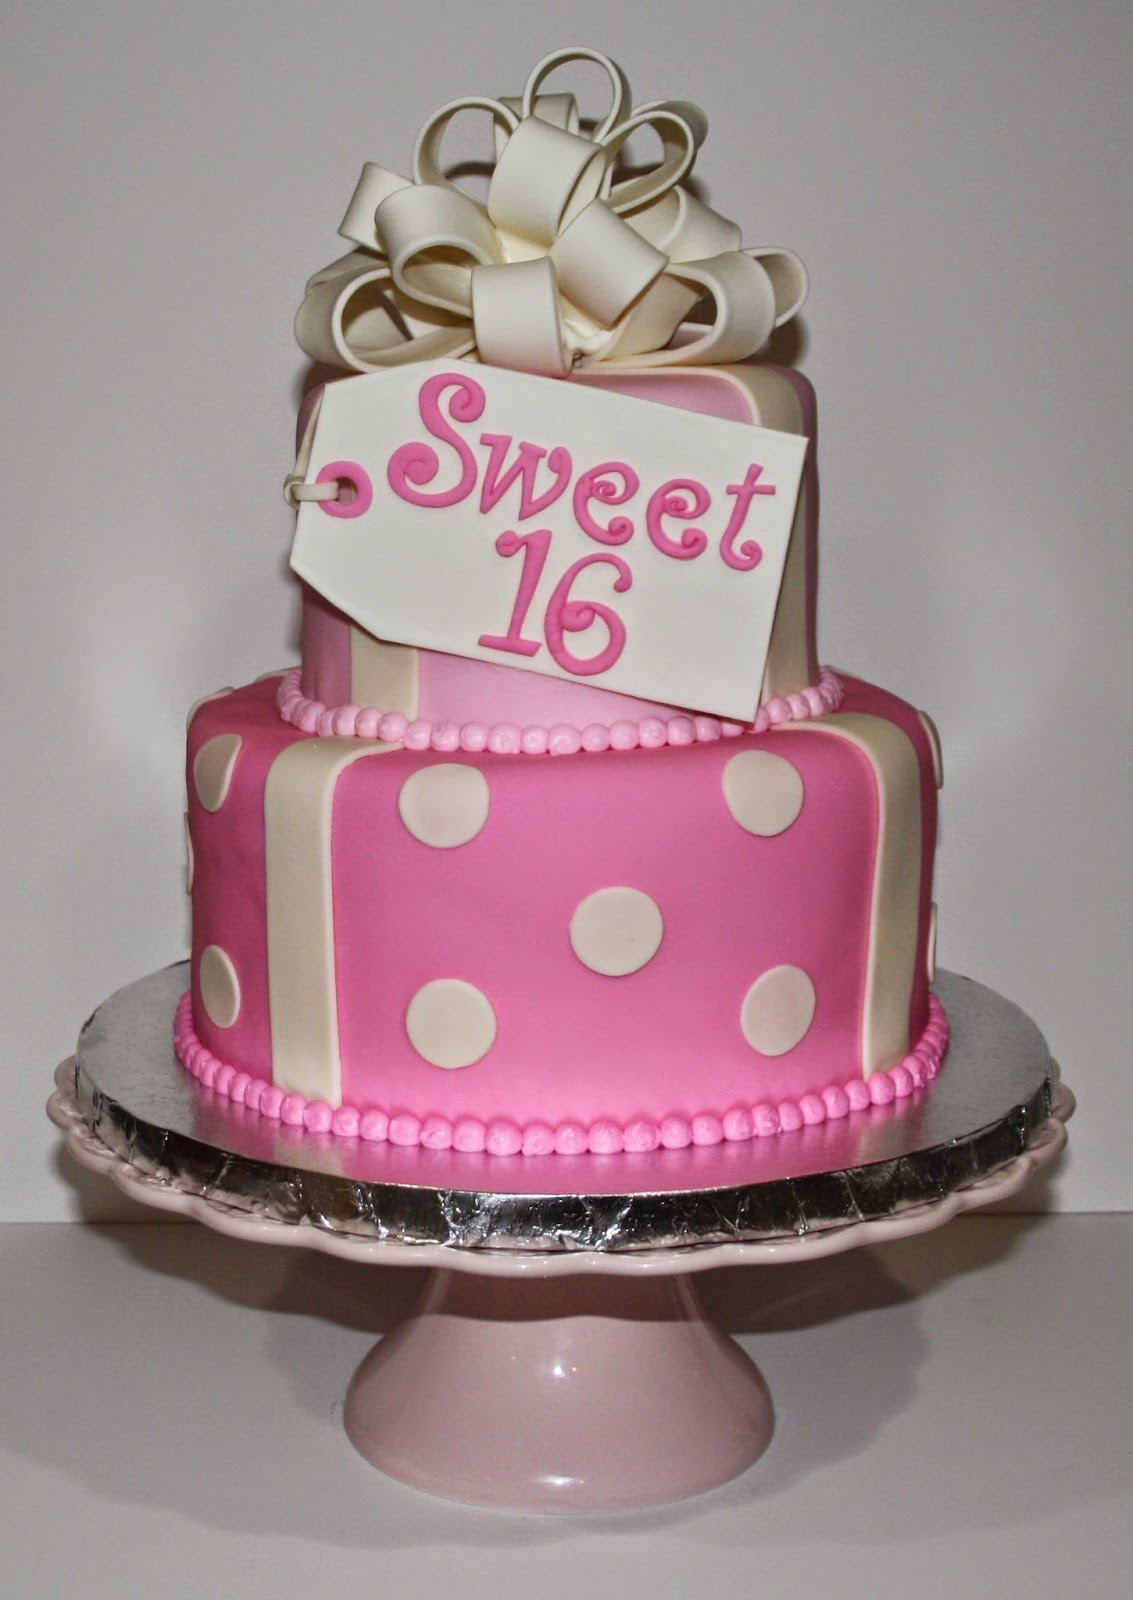 Jacqueline s Sweet Shop: Sweet 16 Birthday Cake and Cupcakes